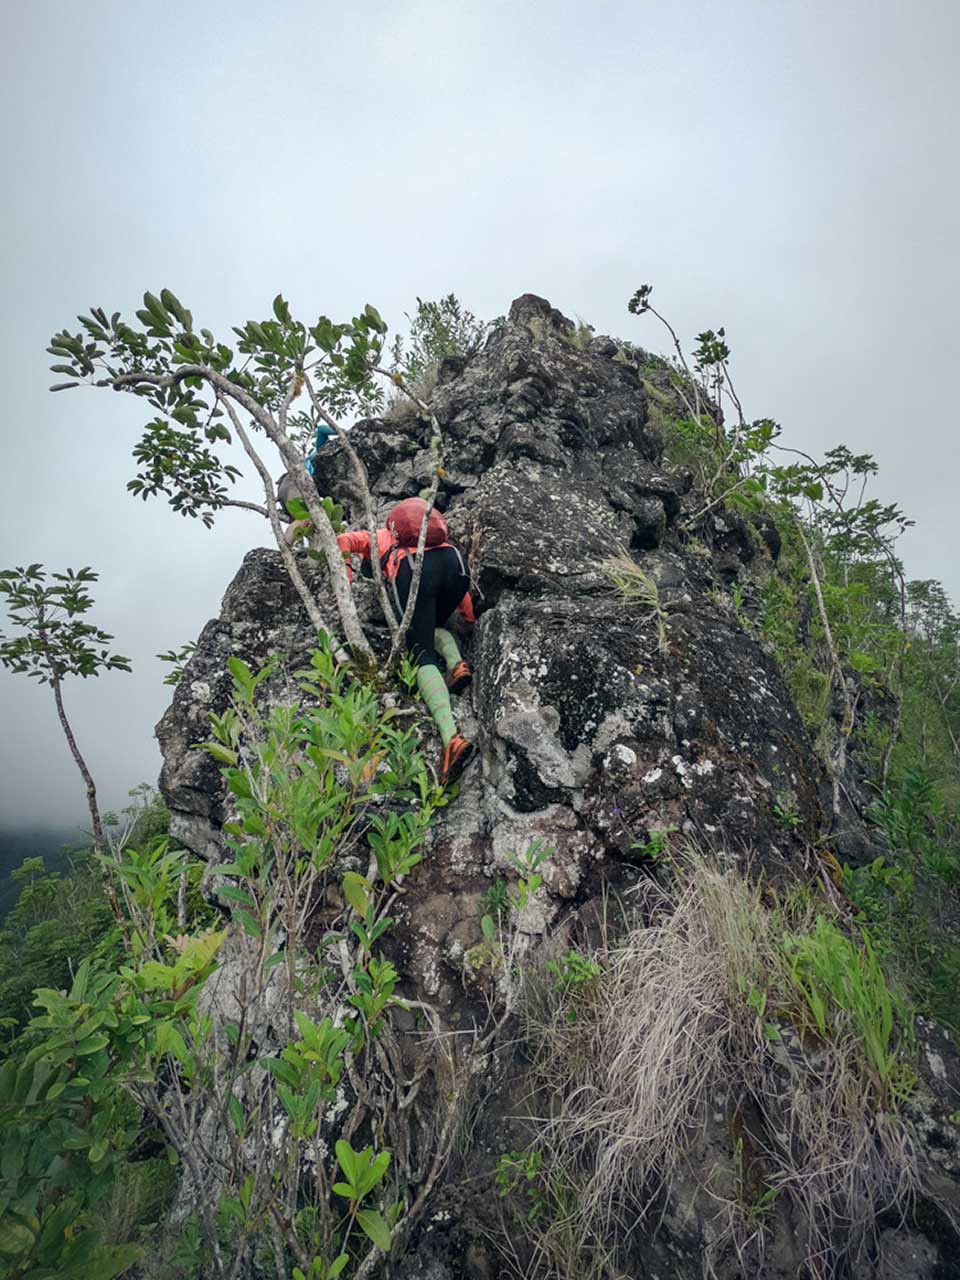 hikers climbing rockface